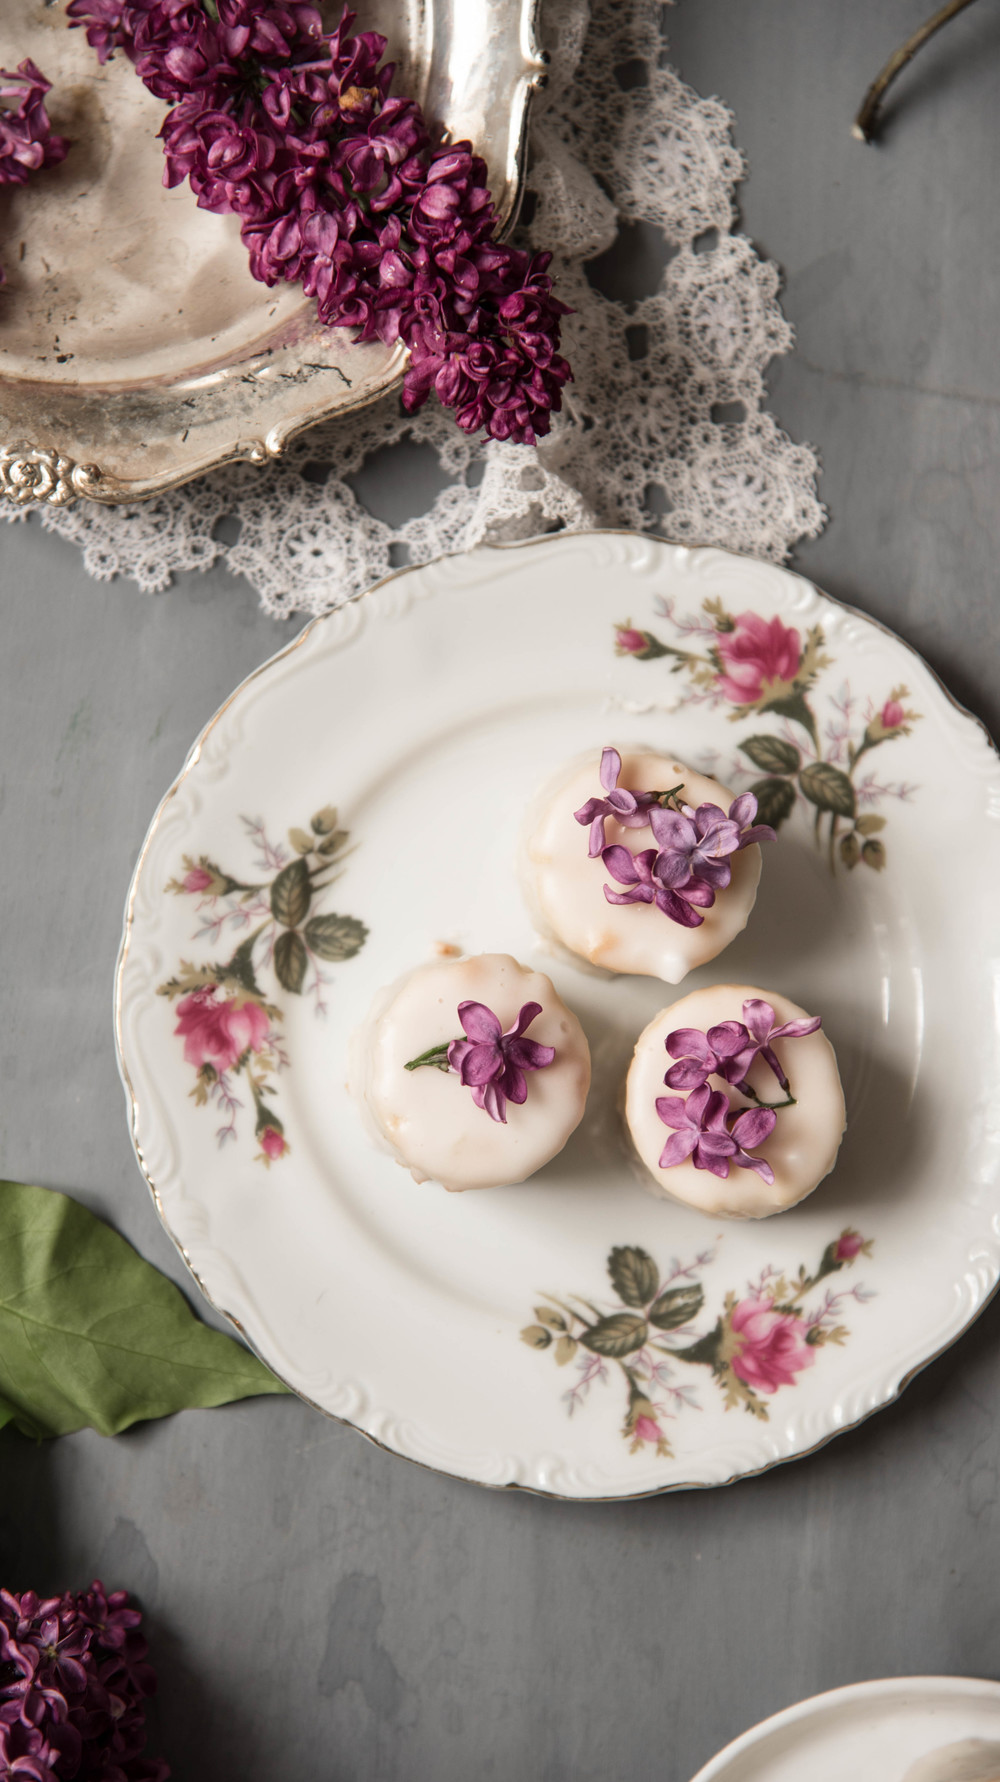 ROSE & IVY Journal Vanilla Petit Fours A Mother's Day Dessert Idea